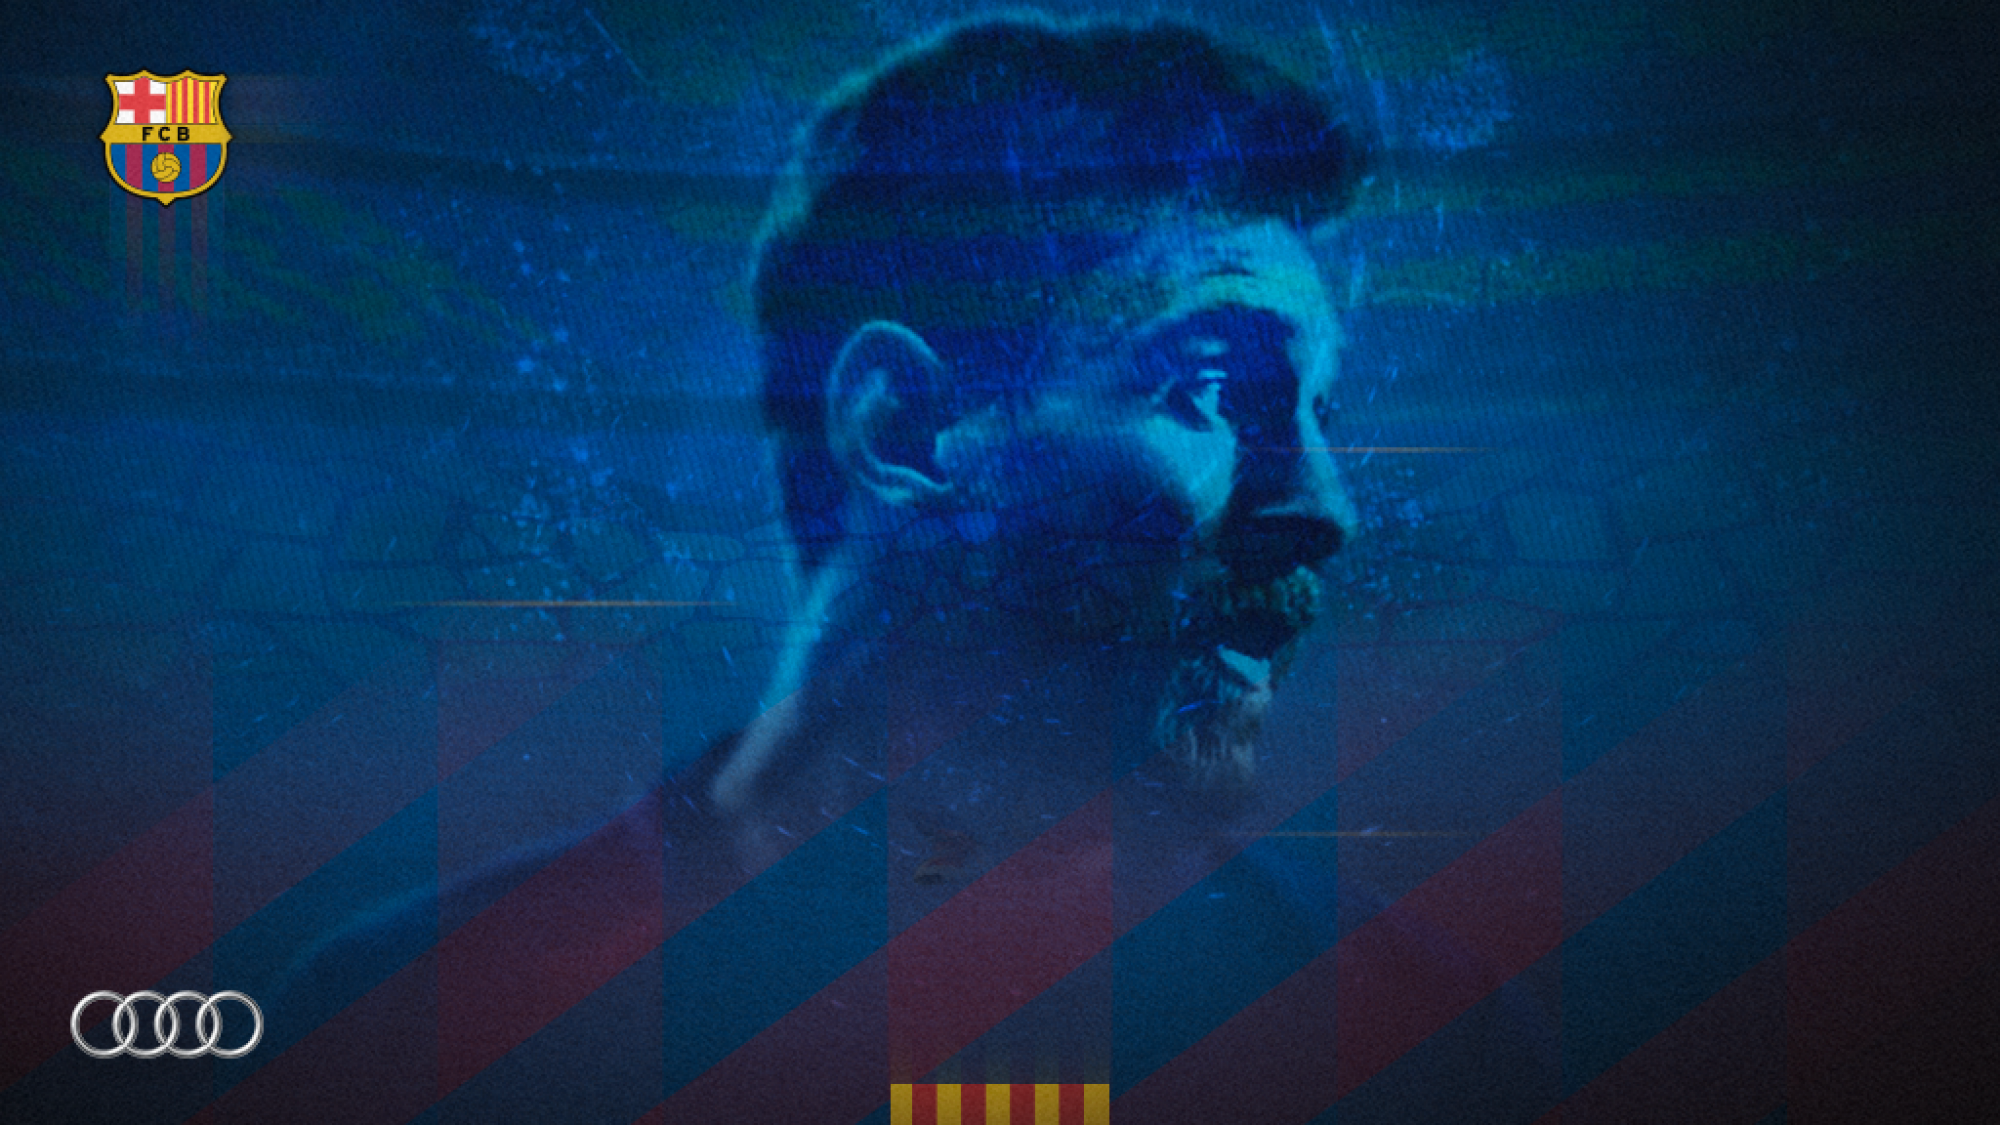 fc_barca_man_of_the_match_01b